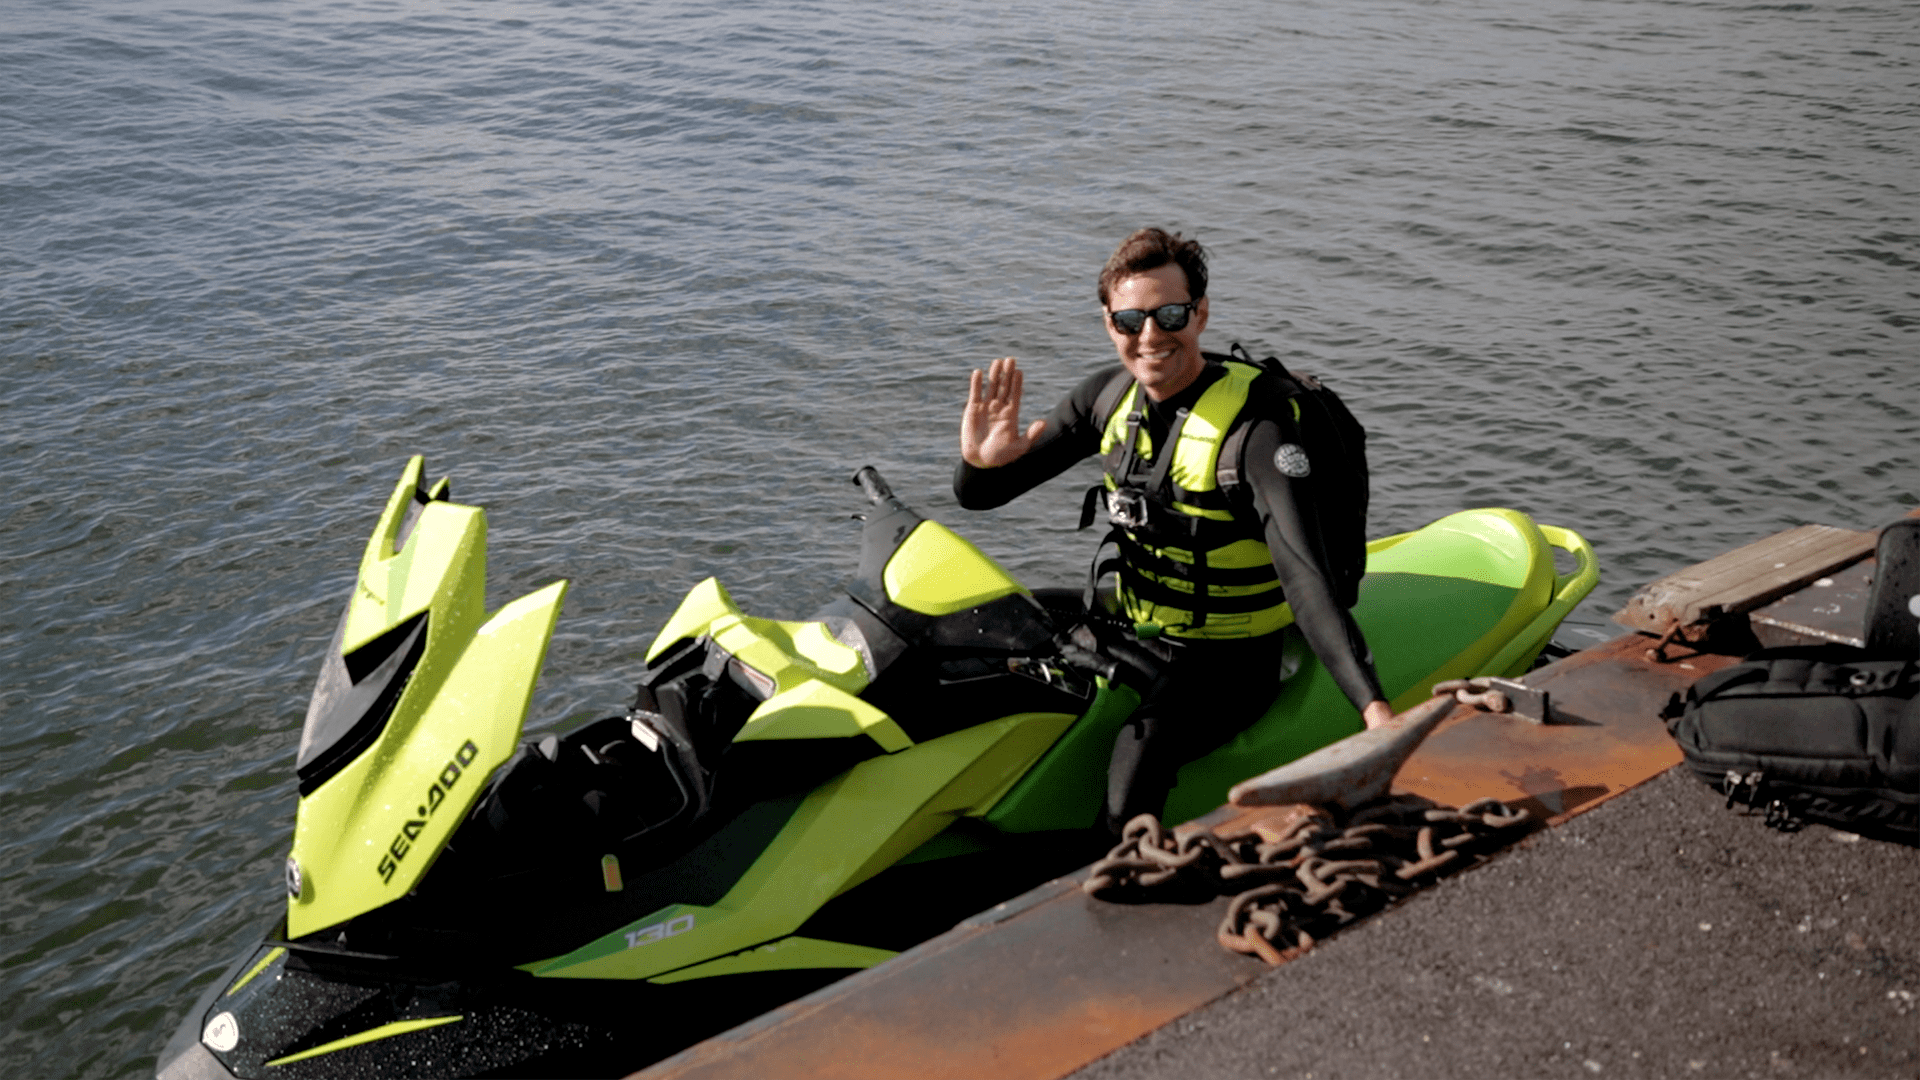 Man who jet skis to work in NYC: 'I'm just a regular guy who was fed up with his commute'